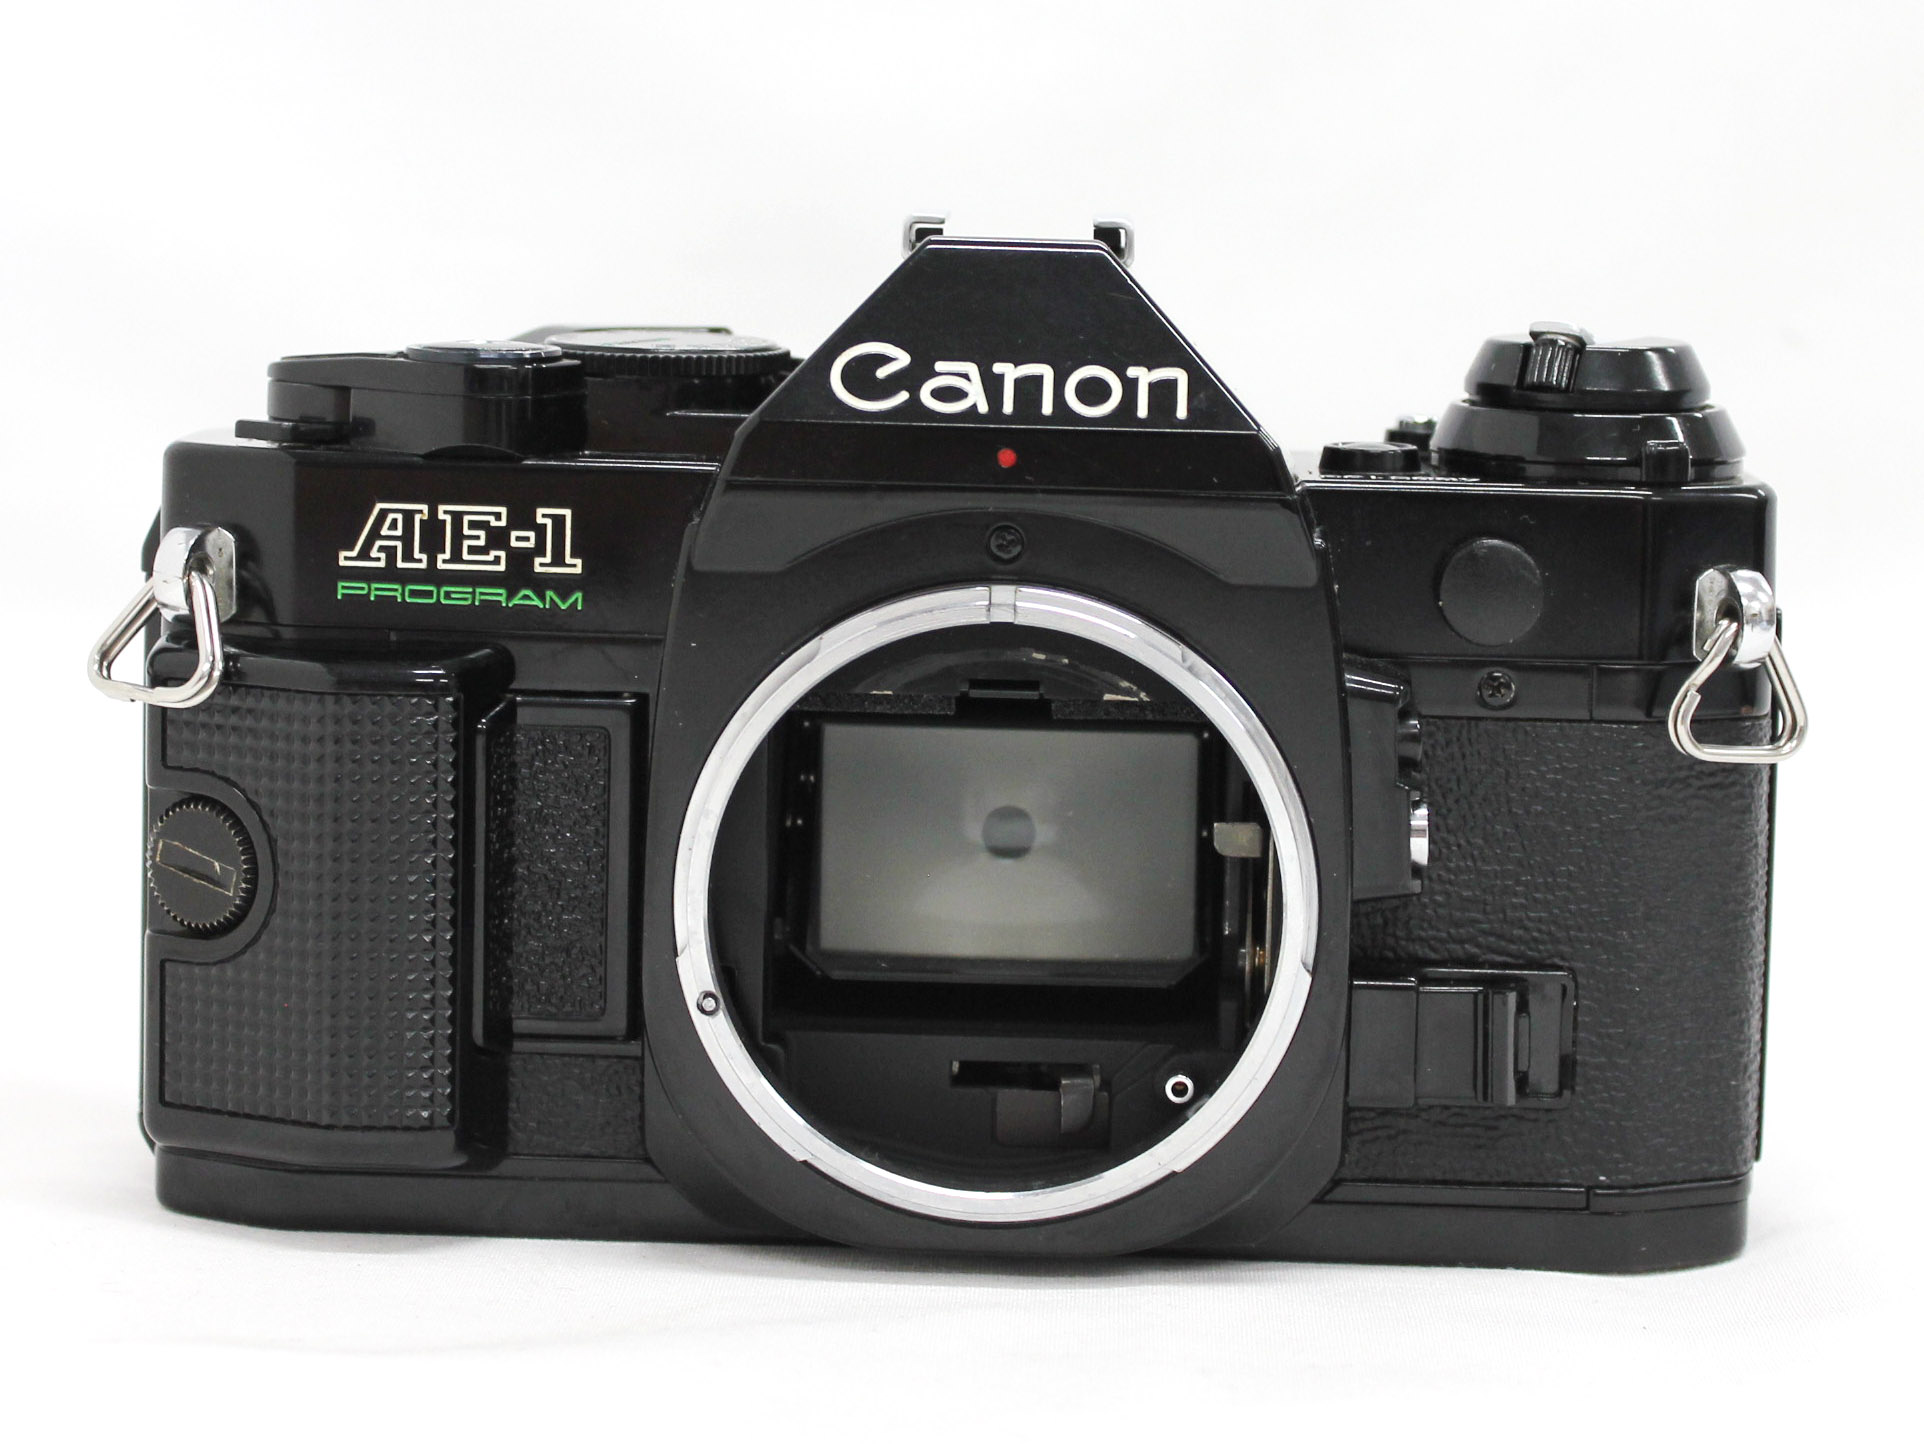 Canon AE-1 Program 35mm SLR Film Camera Black with New FD 35mm F/2.8 Lens from Japan Photo 3